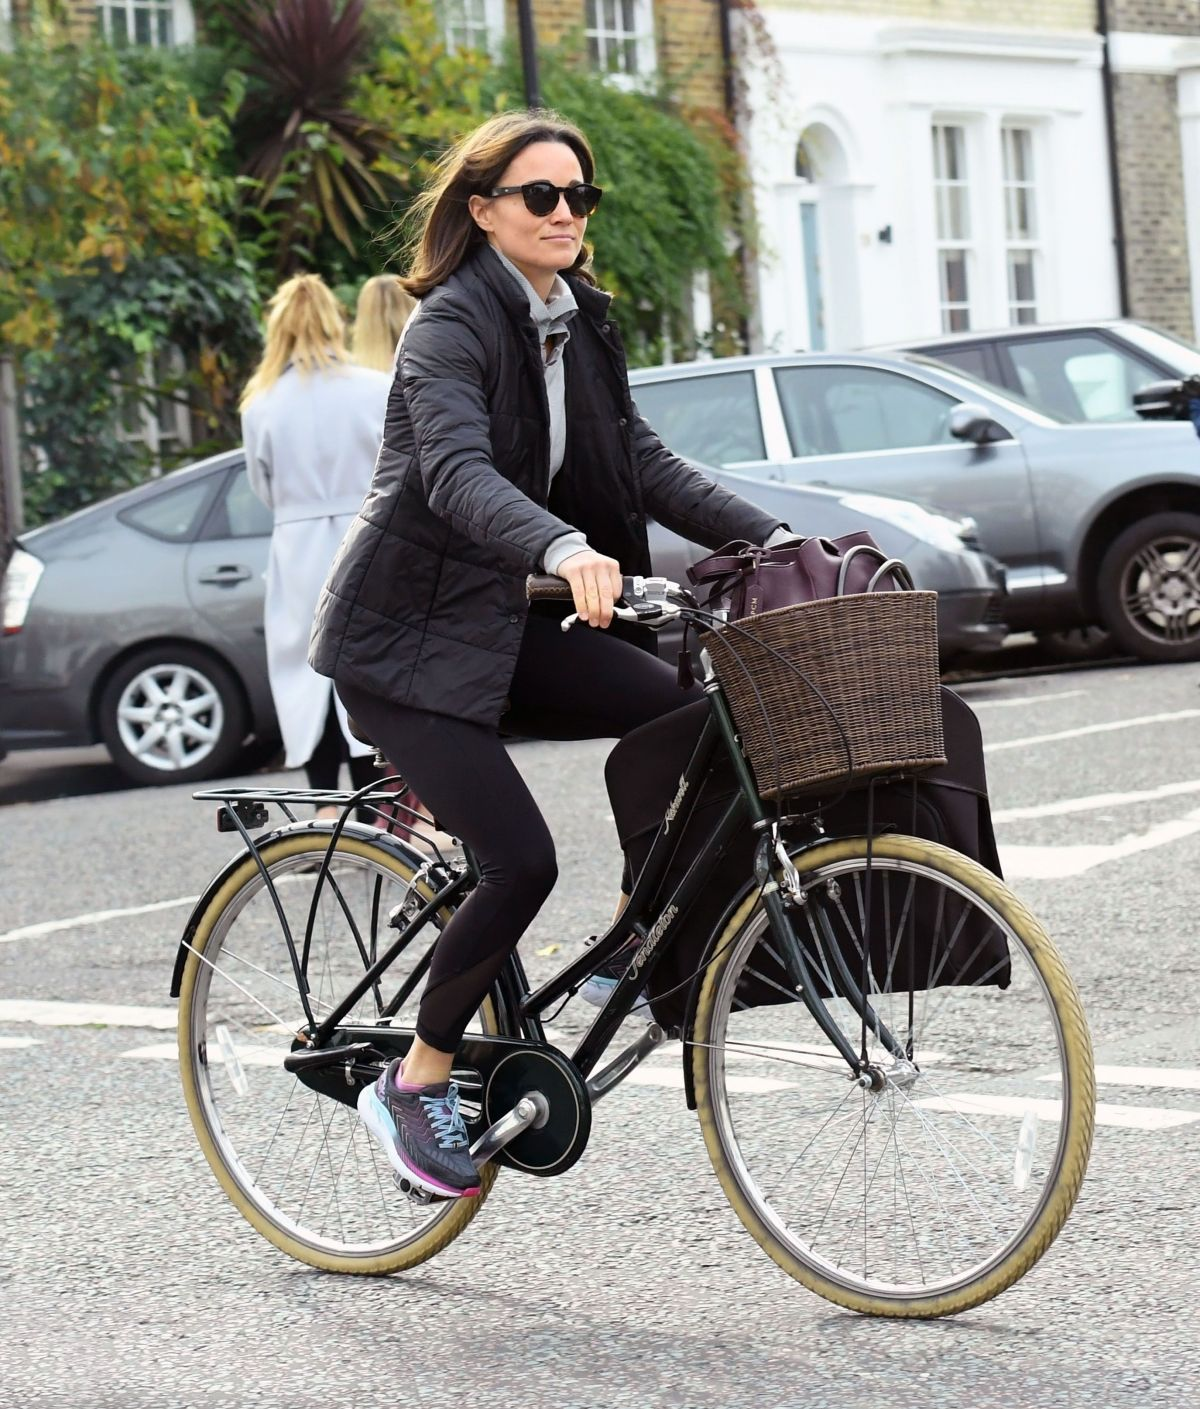 pippa-middleton-out-riding-a-bicycle-in-london-11-09-2017-5.jpg